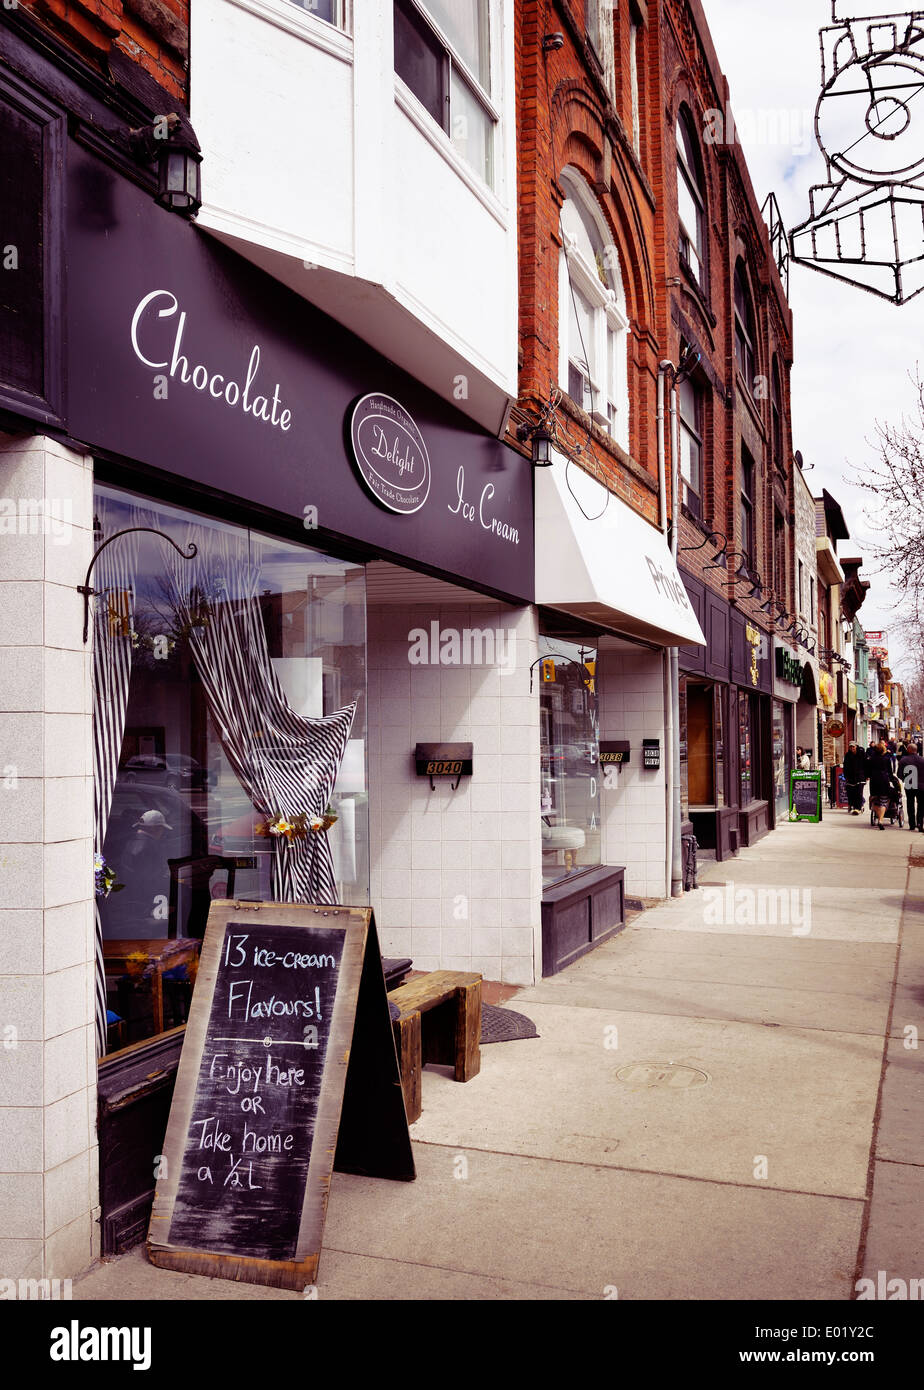 Delight handmade organic fair trade chocolate cafe shop at the ...